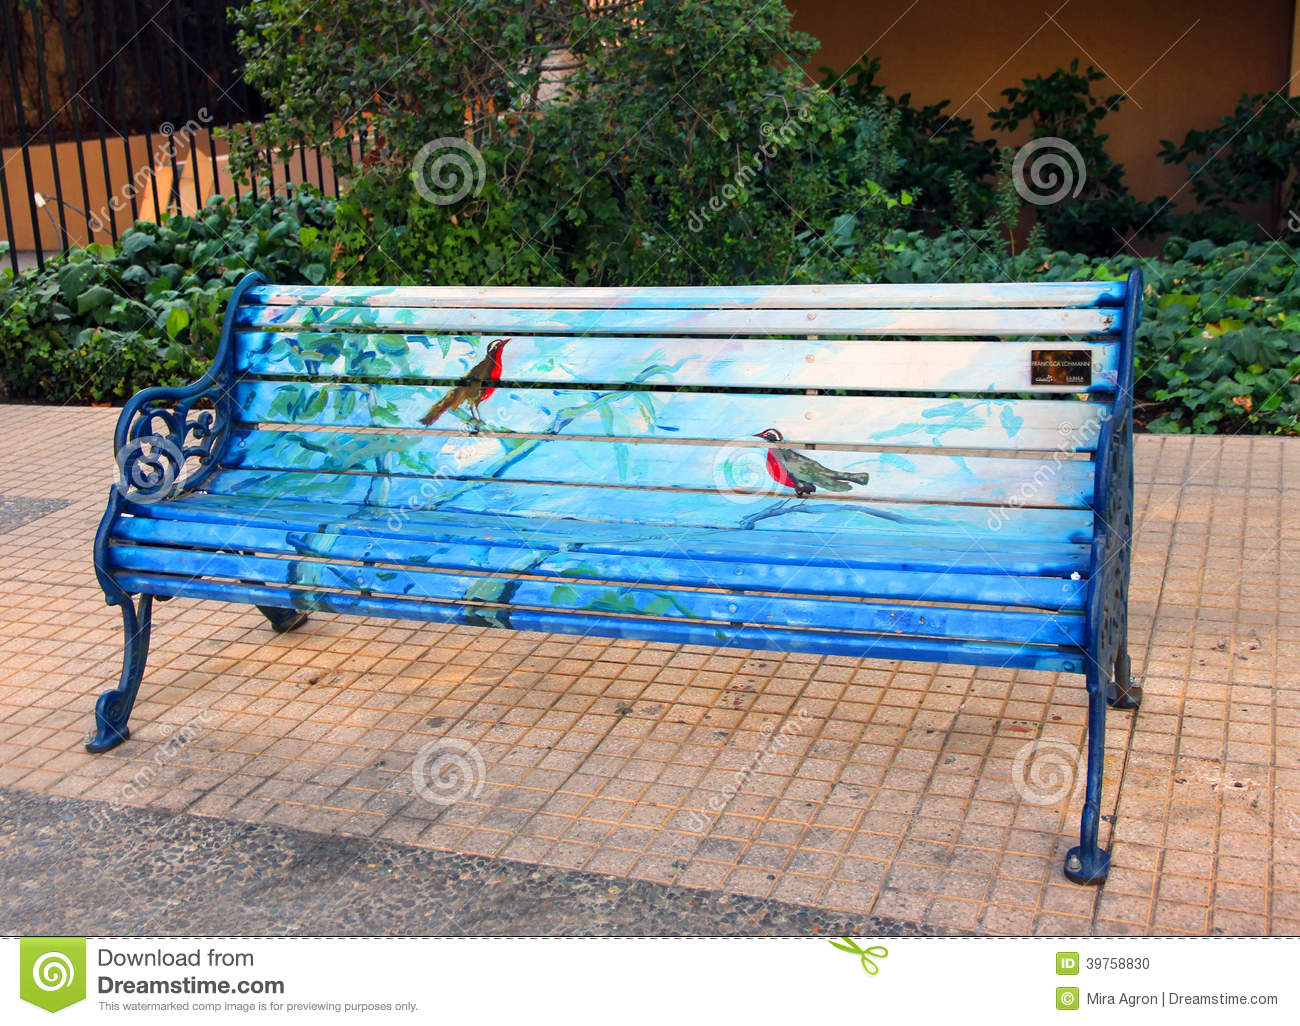 ... who painted 40 park benches in a neighborhoodof Santiago, Chile